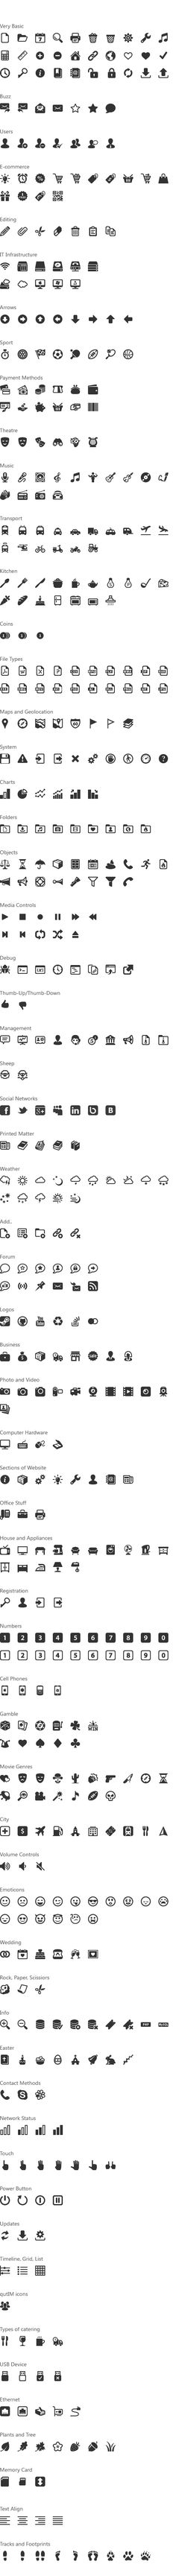 Free Download : 529 Icon Windows 8 Metro Style Pack